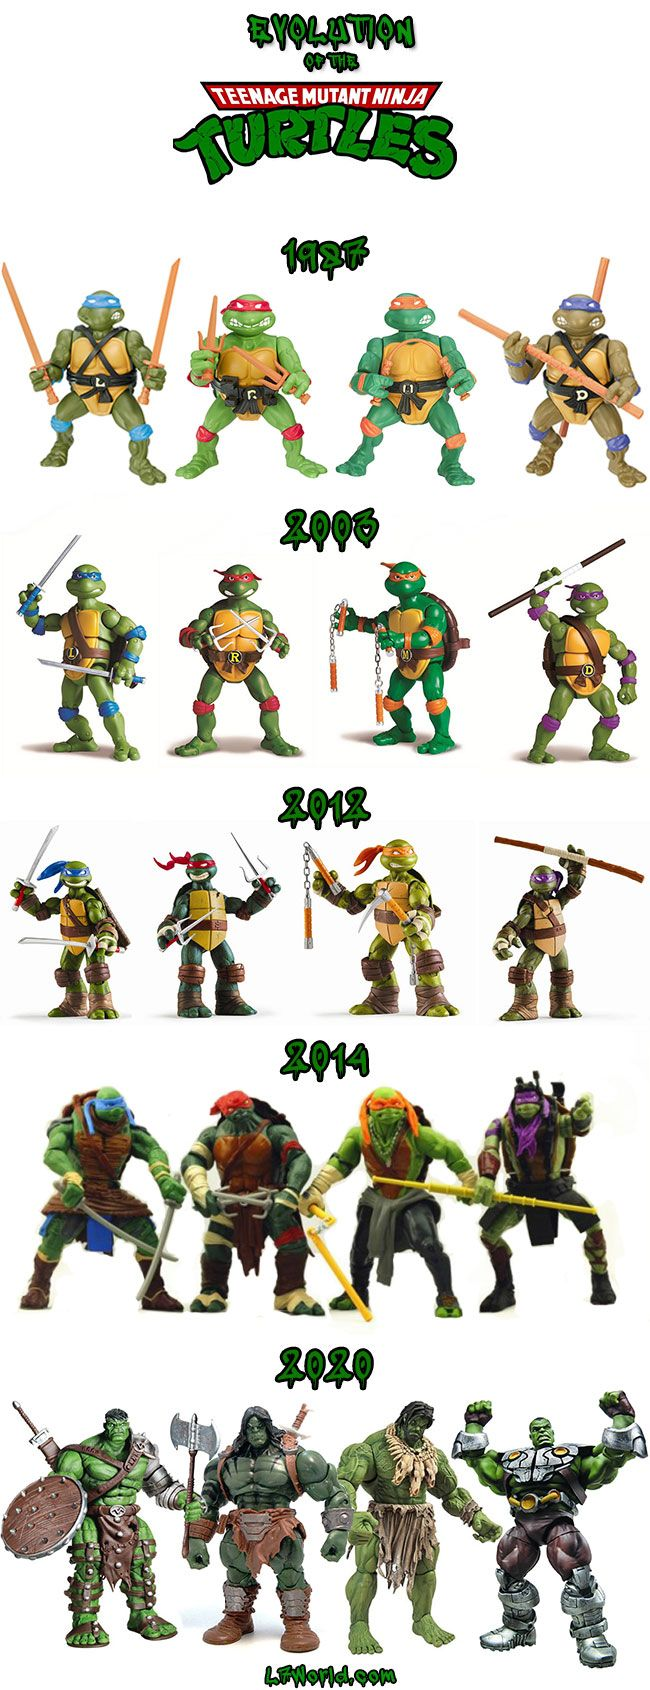 """Teenage Mutant Ninja Turtles movie toys 2014: The Teenage Mutant Ninja Turtles have gone through a lot of changes over the years but their latest incarnation is alienating some fans. ACToys has posted some disturbing looking photos of the new movie toyline by Playmates, simply titled """"Ninja Turtles."""" #tmnt #toys #movie #TeenageMutantNinjaTurtles http://l7world.com/2014/03/teenage-mutant-ninja-turtles-toys-2014.html"""